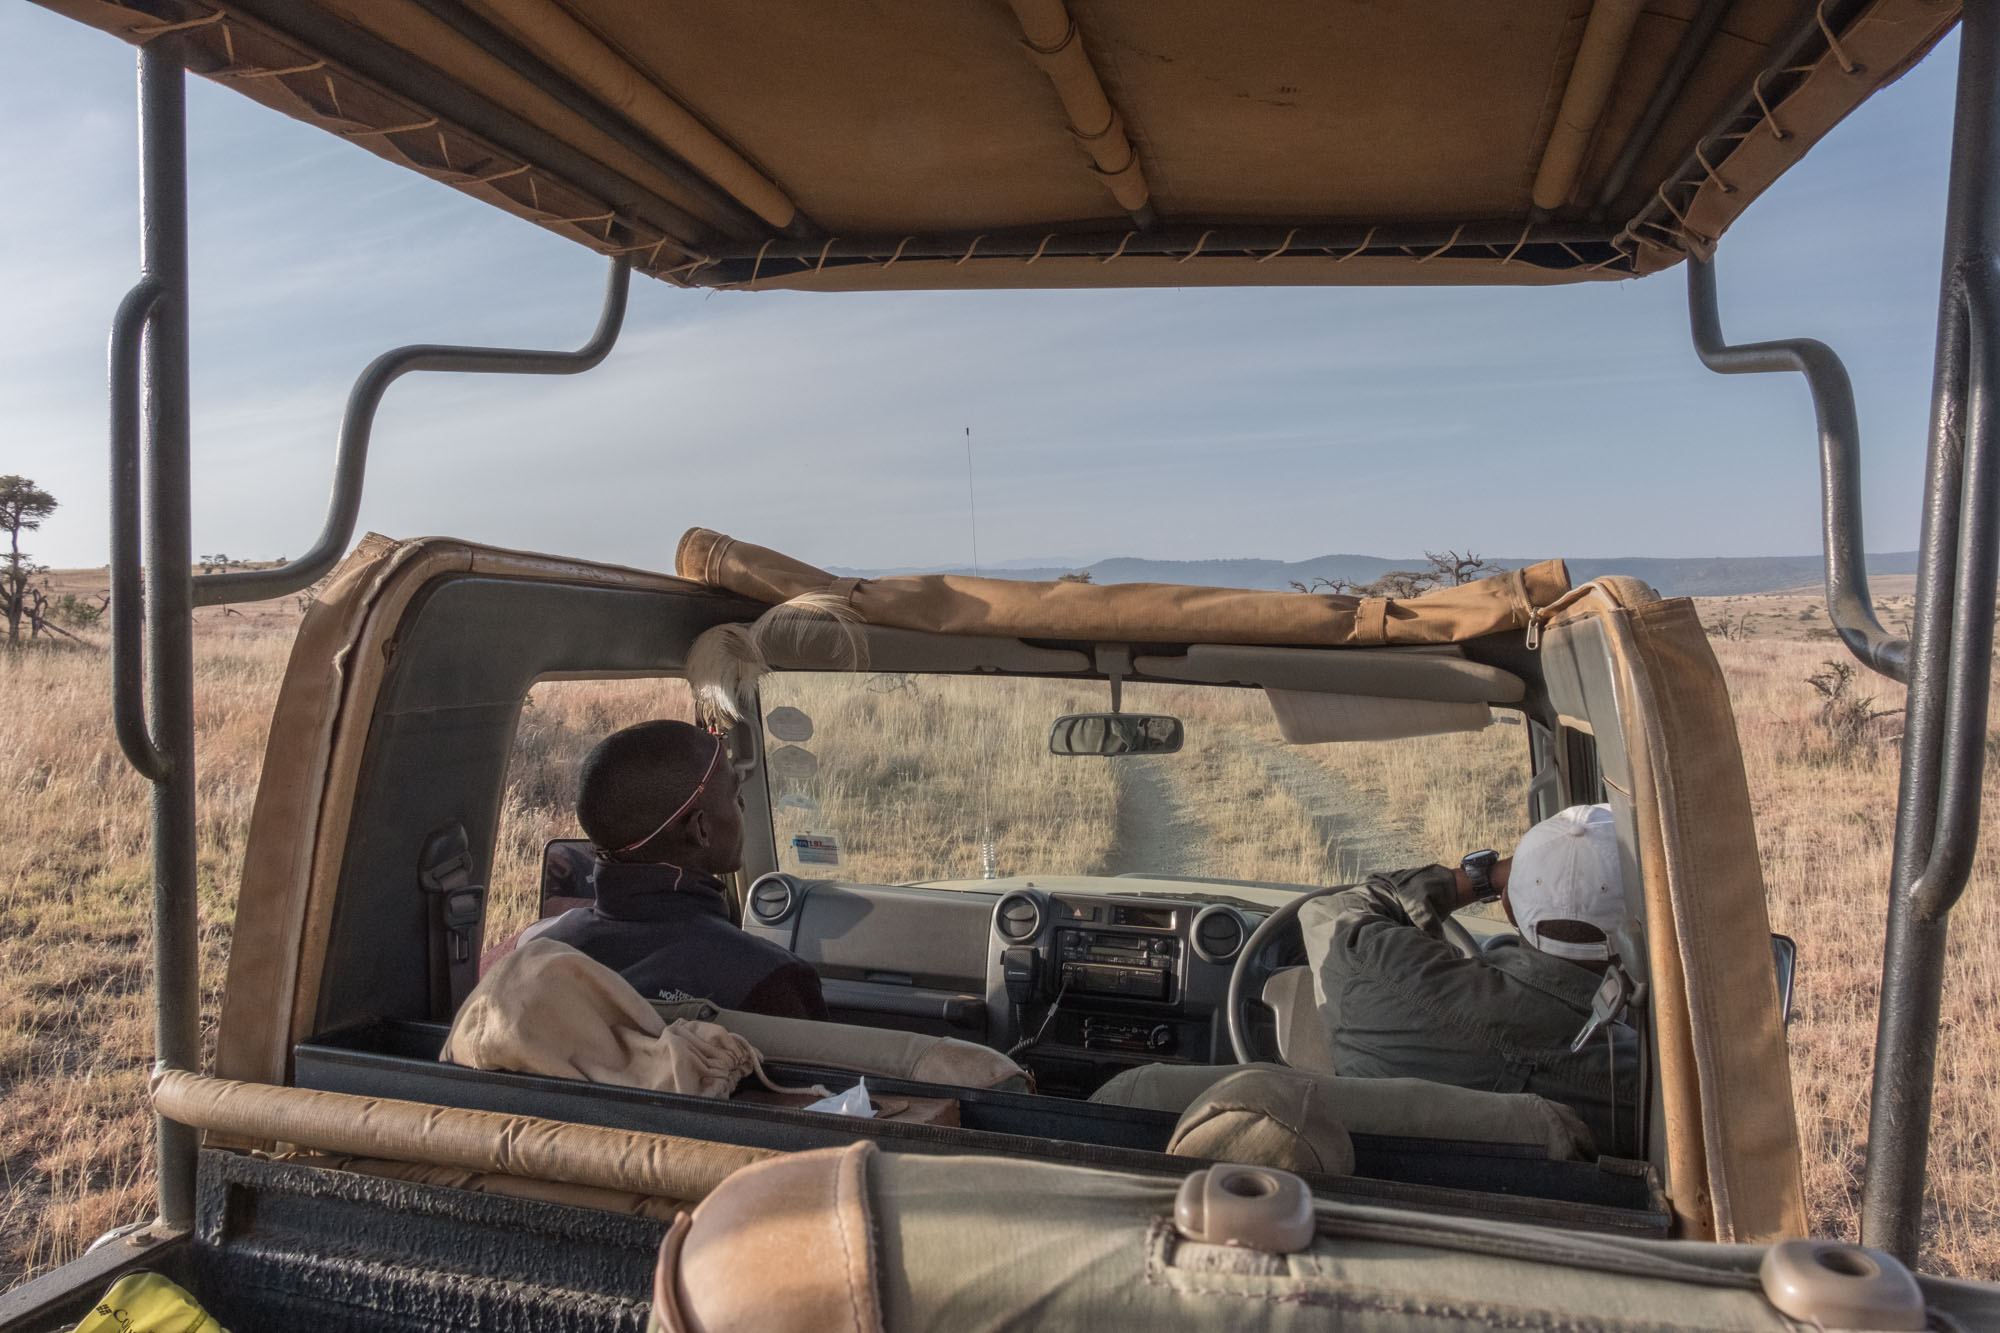 on-safari-lewa-kenya-2018-01-06